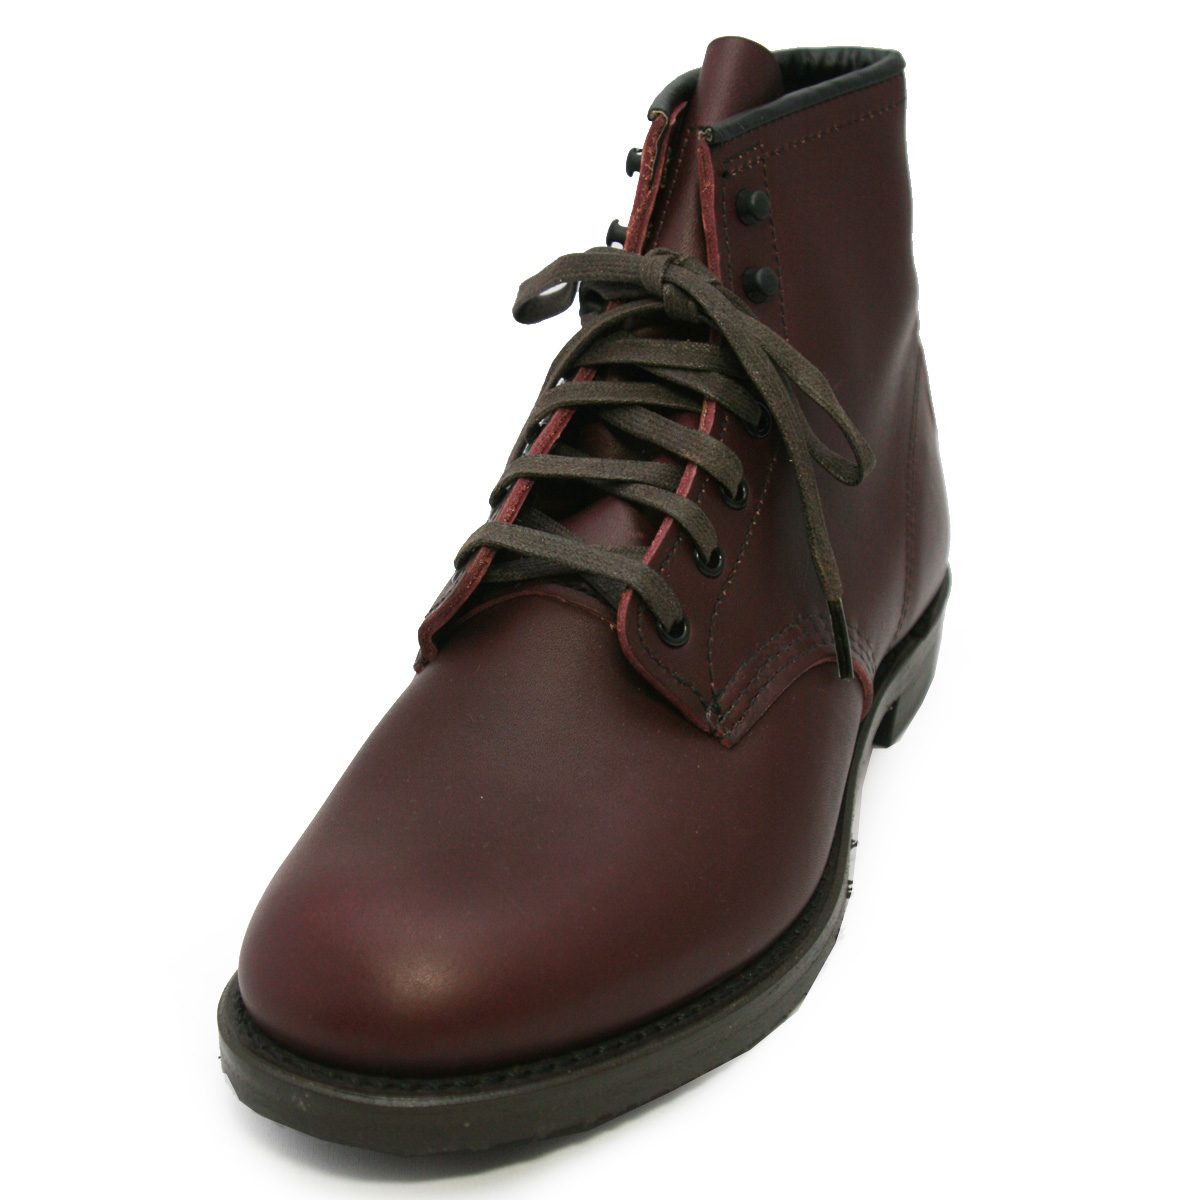 RED WING[レッド・ウィング] RW9062 BECKMAN BOOTS